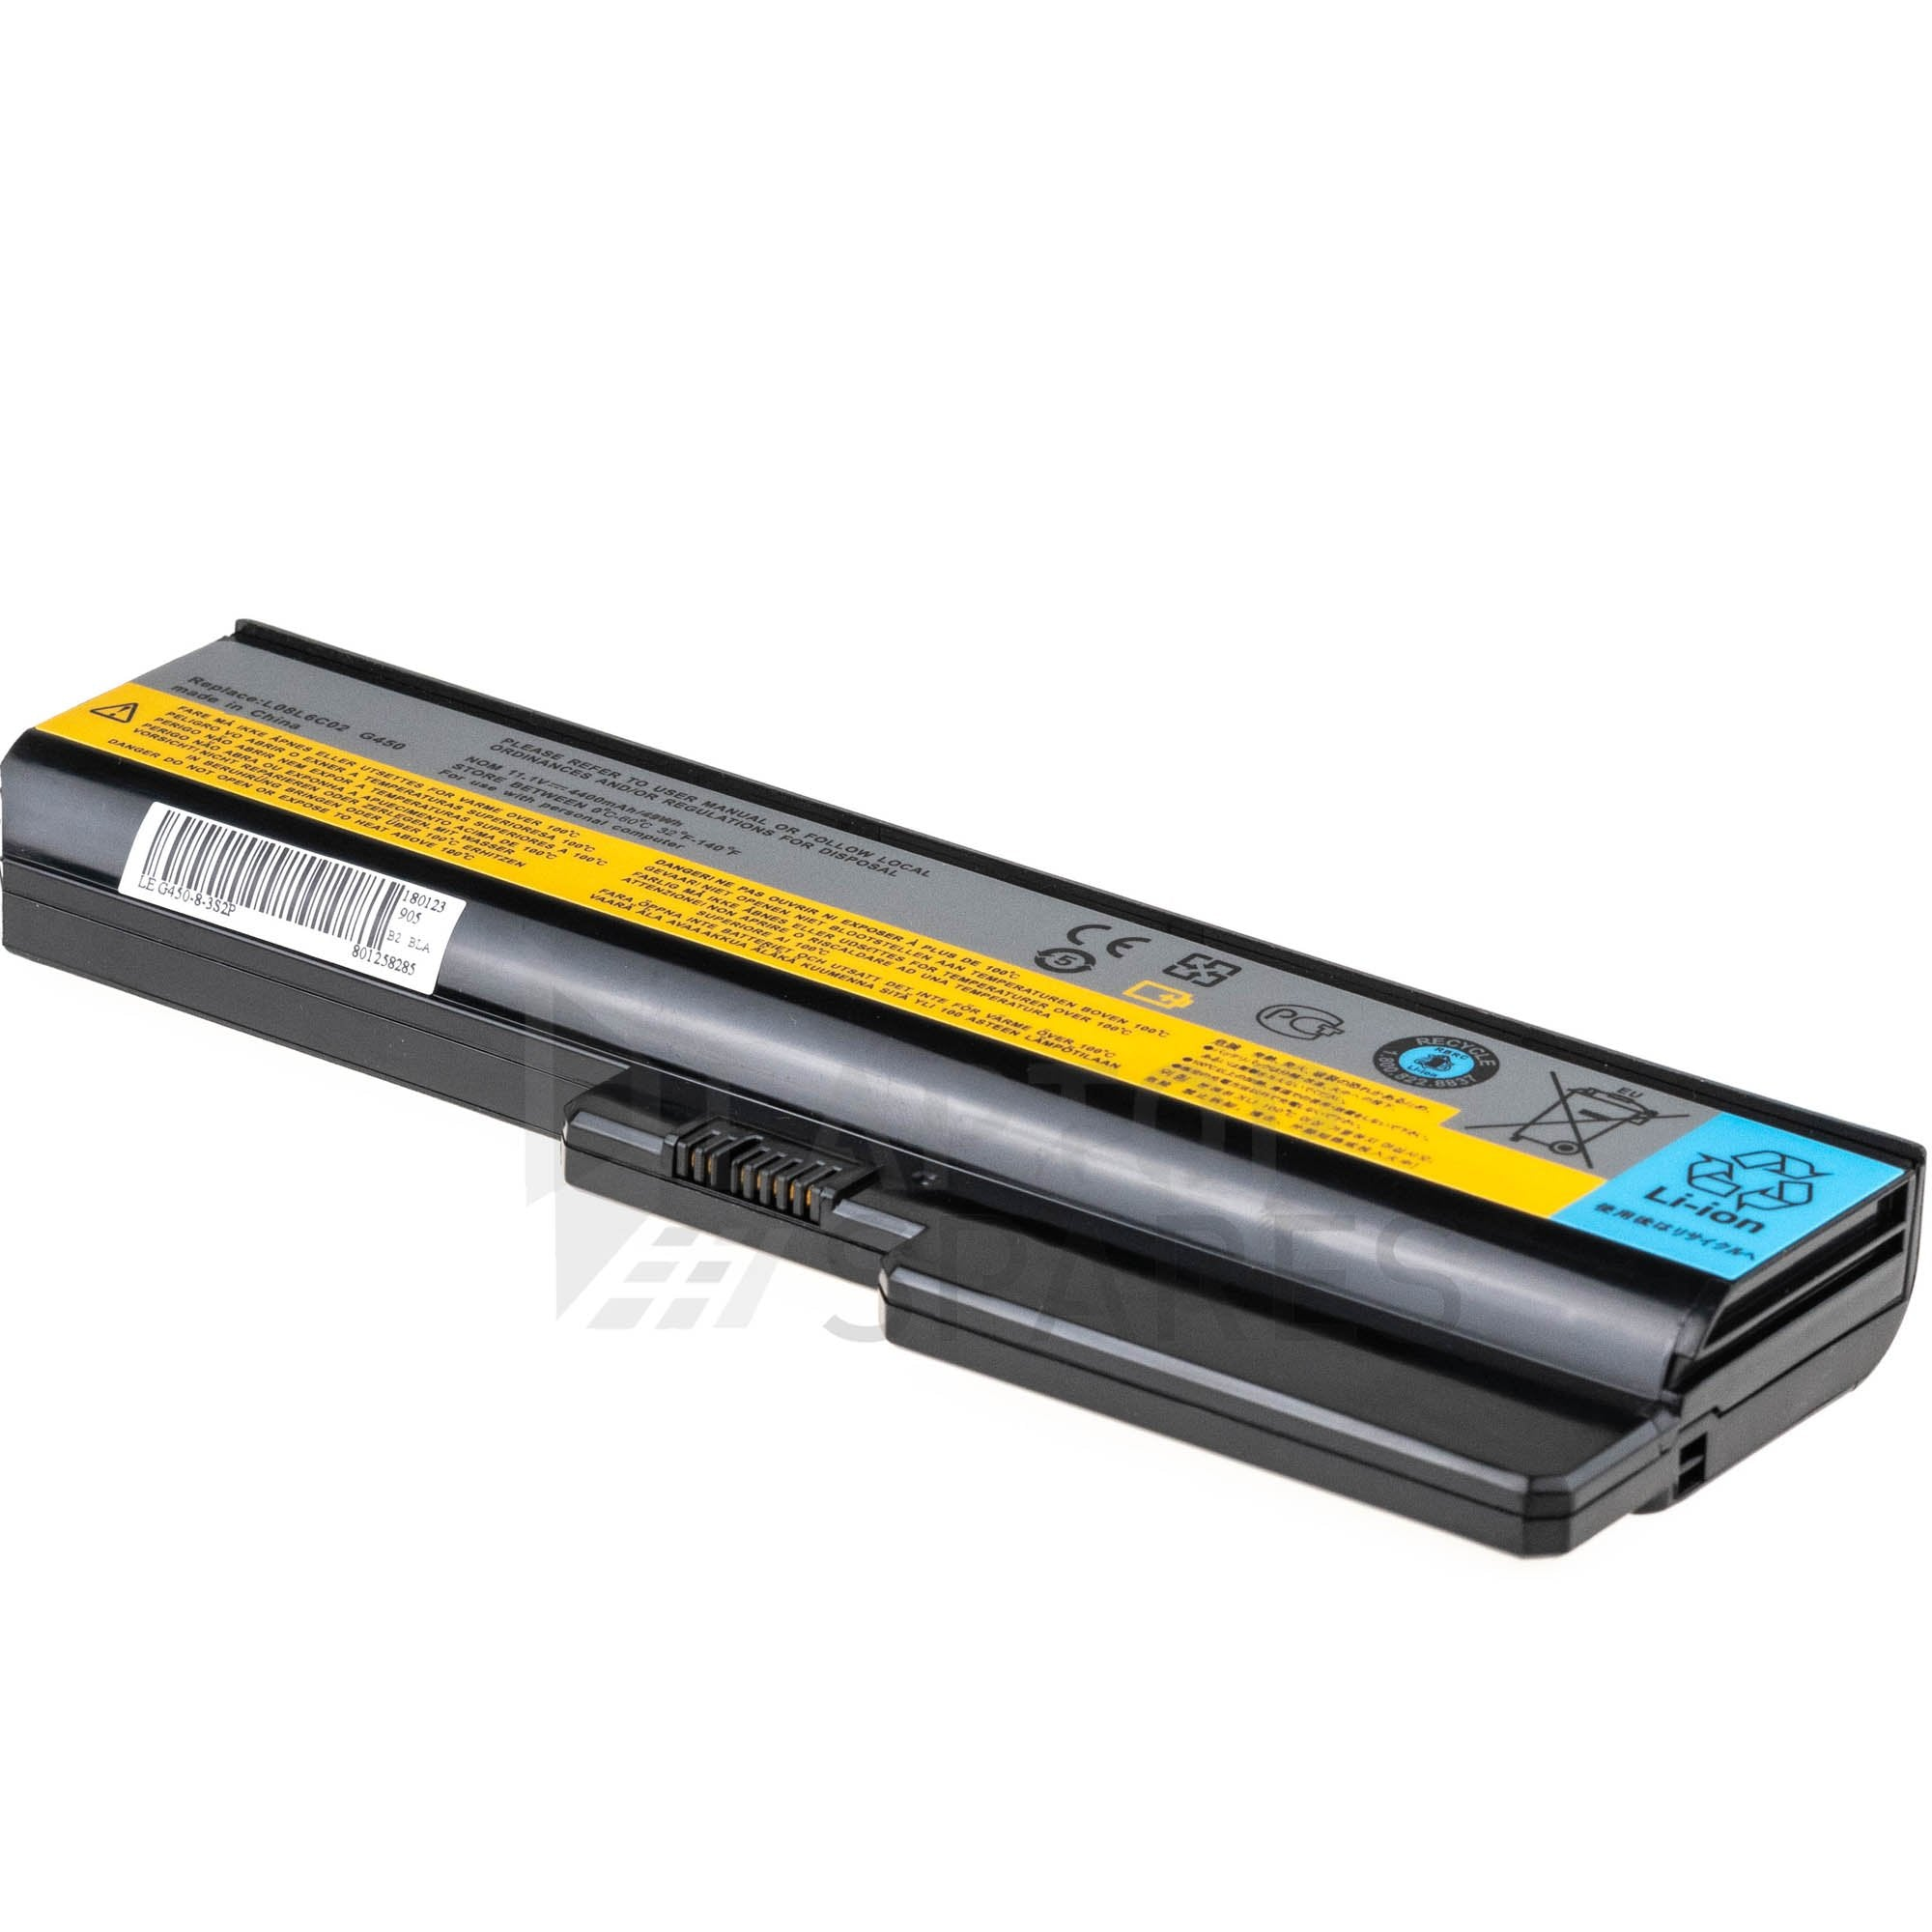 Lenovo 121000792 4400mAh 6 Cell Battery